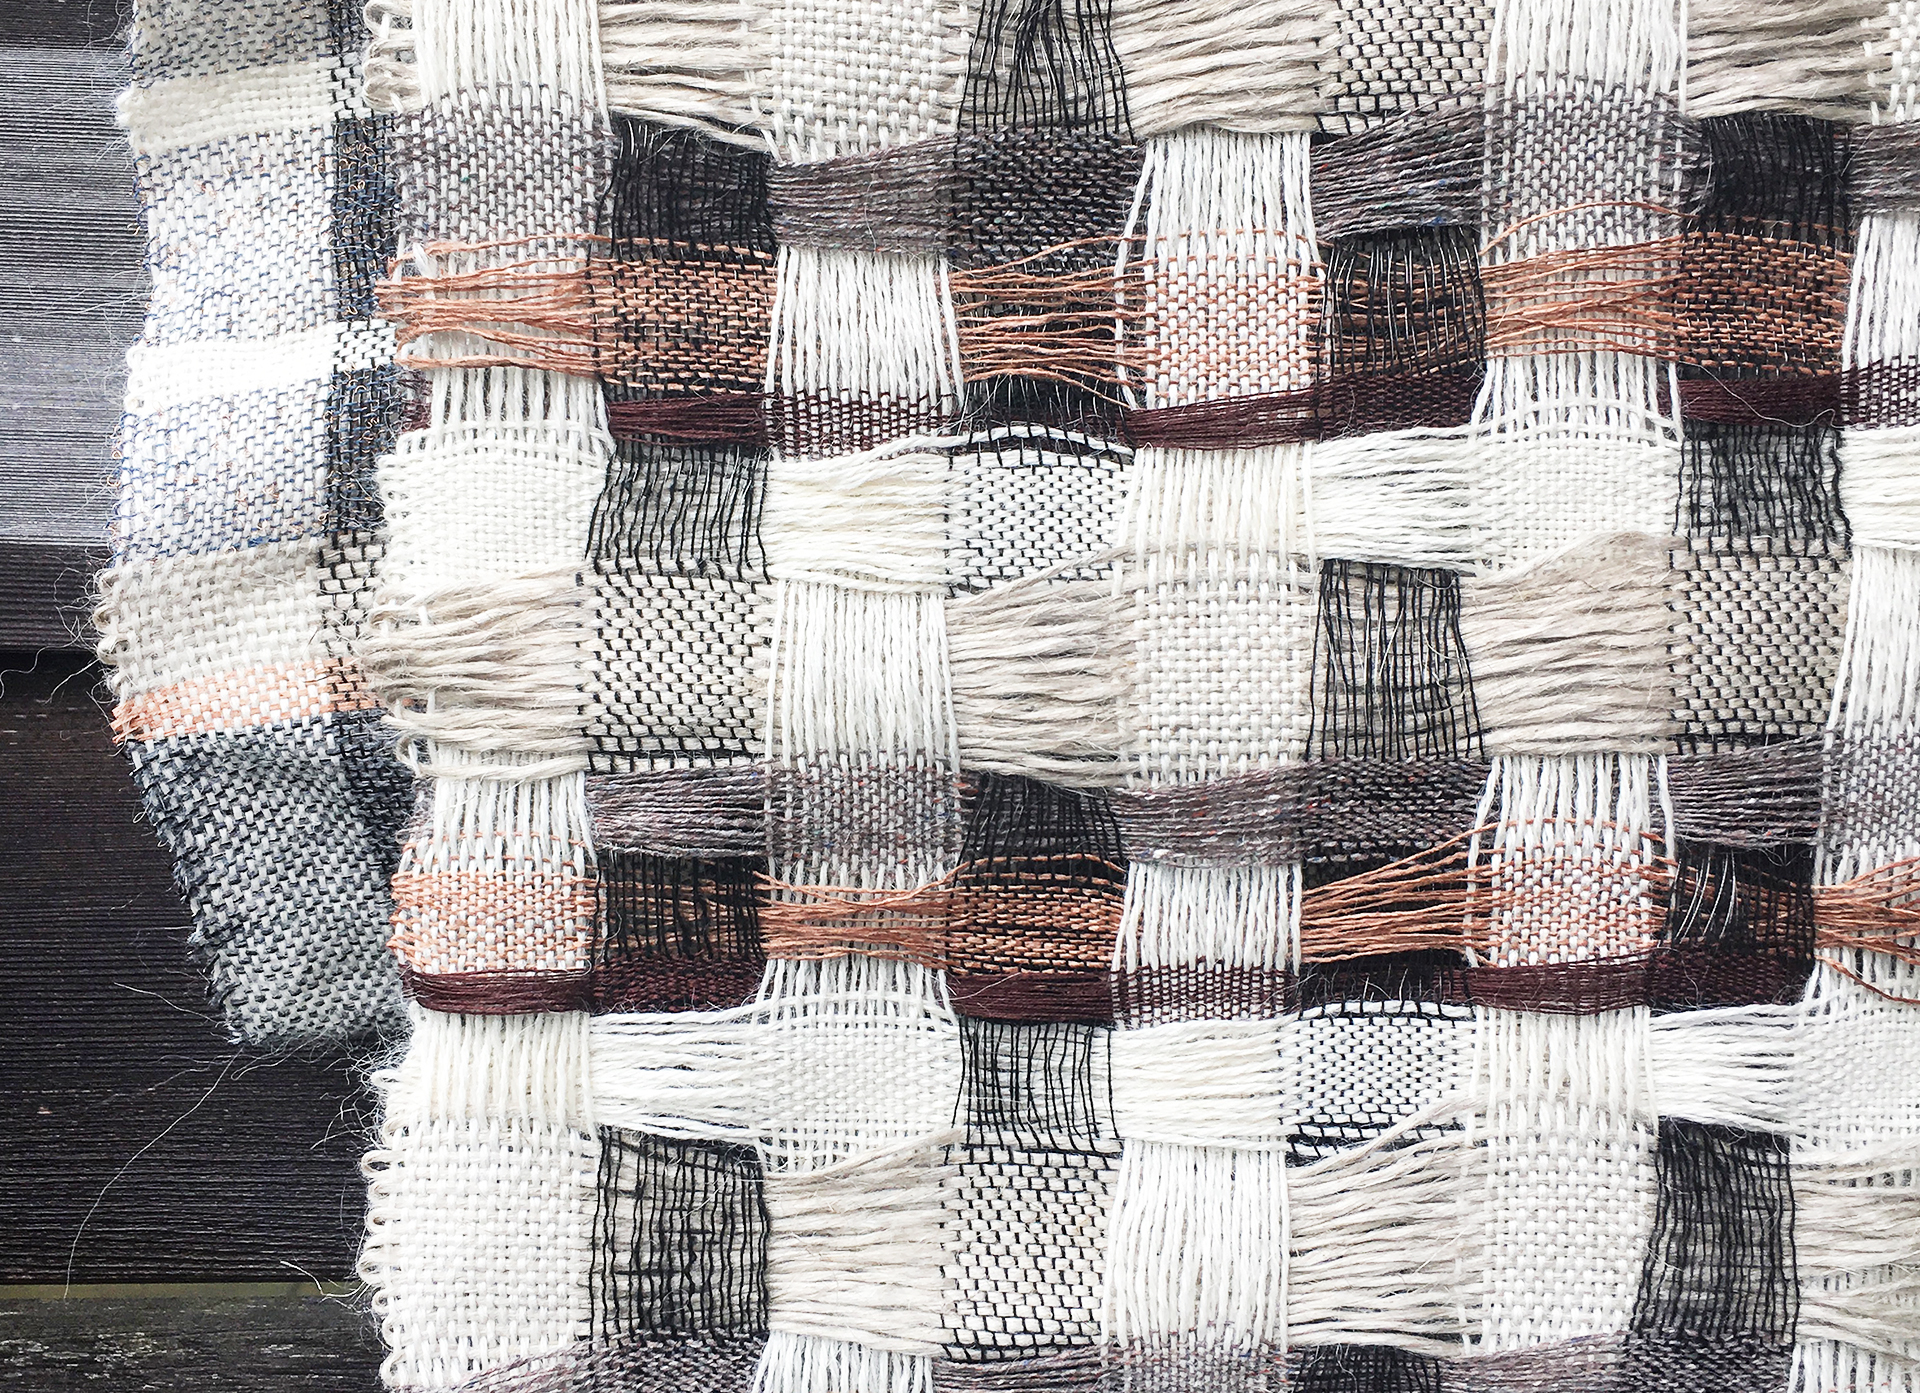 weaving artist Veronica Pock material use